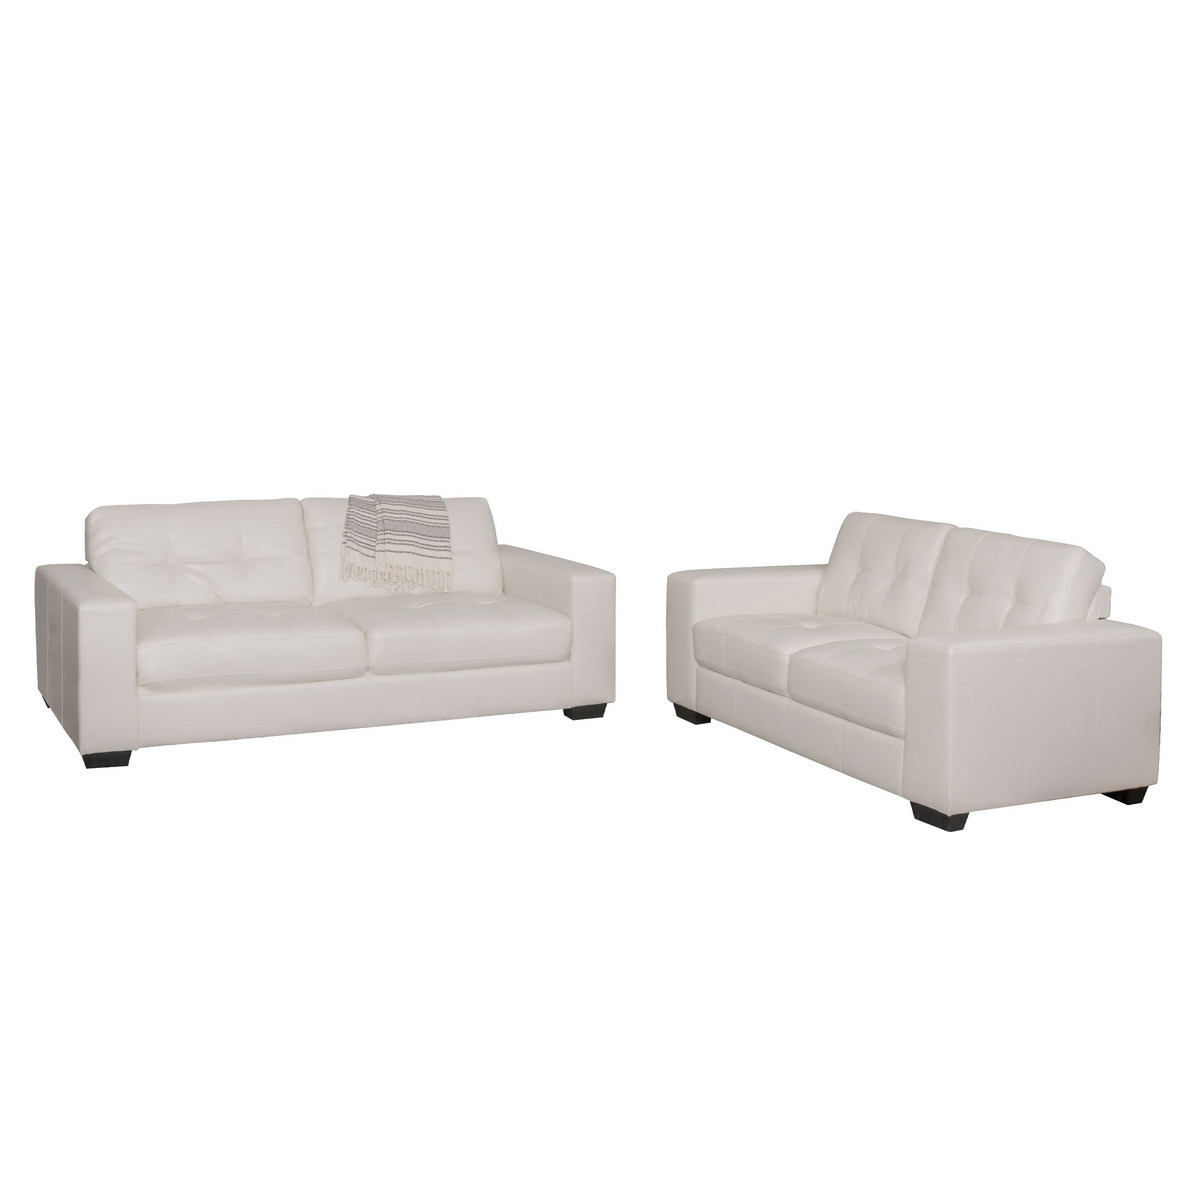 Corliving Club Tufted White Bonded Leather Sofa Set